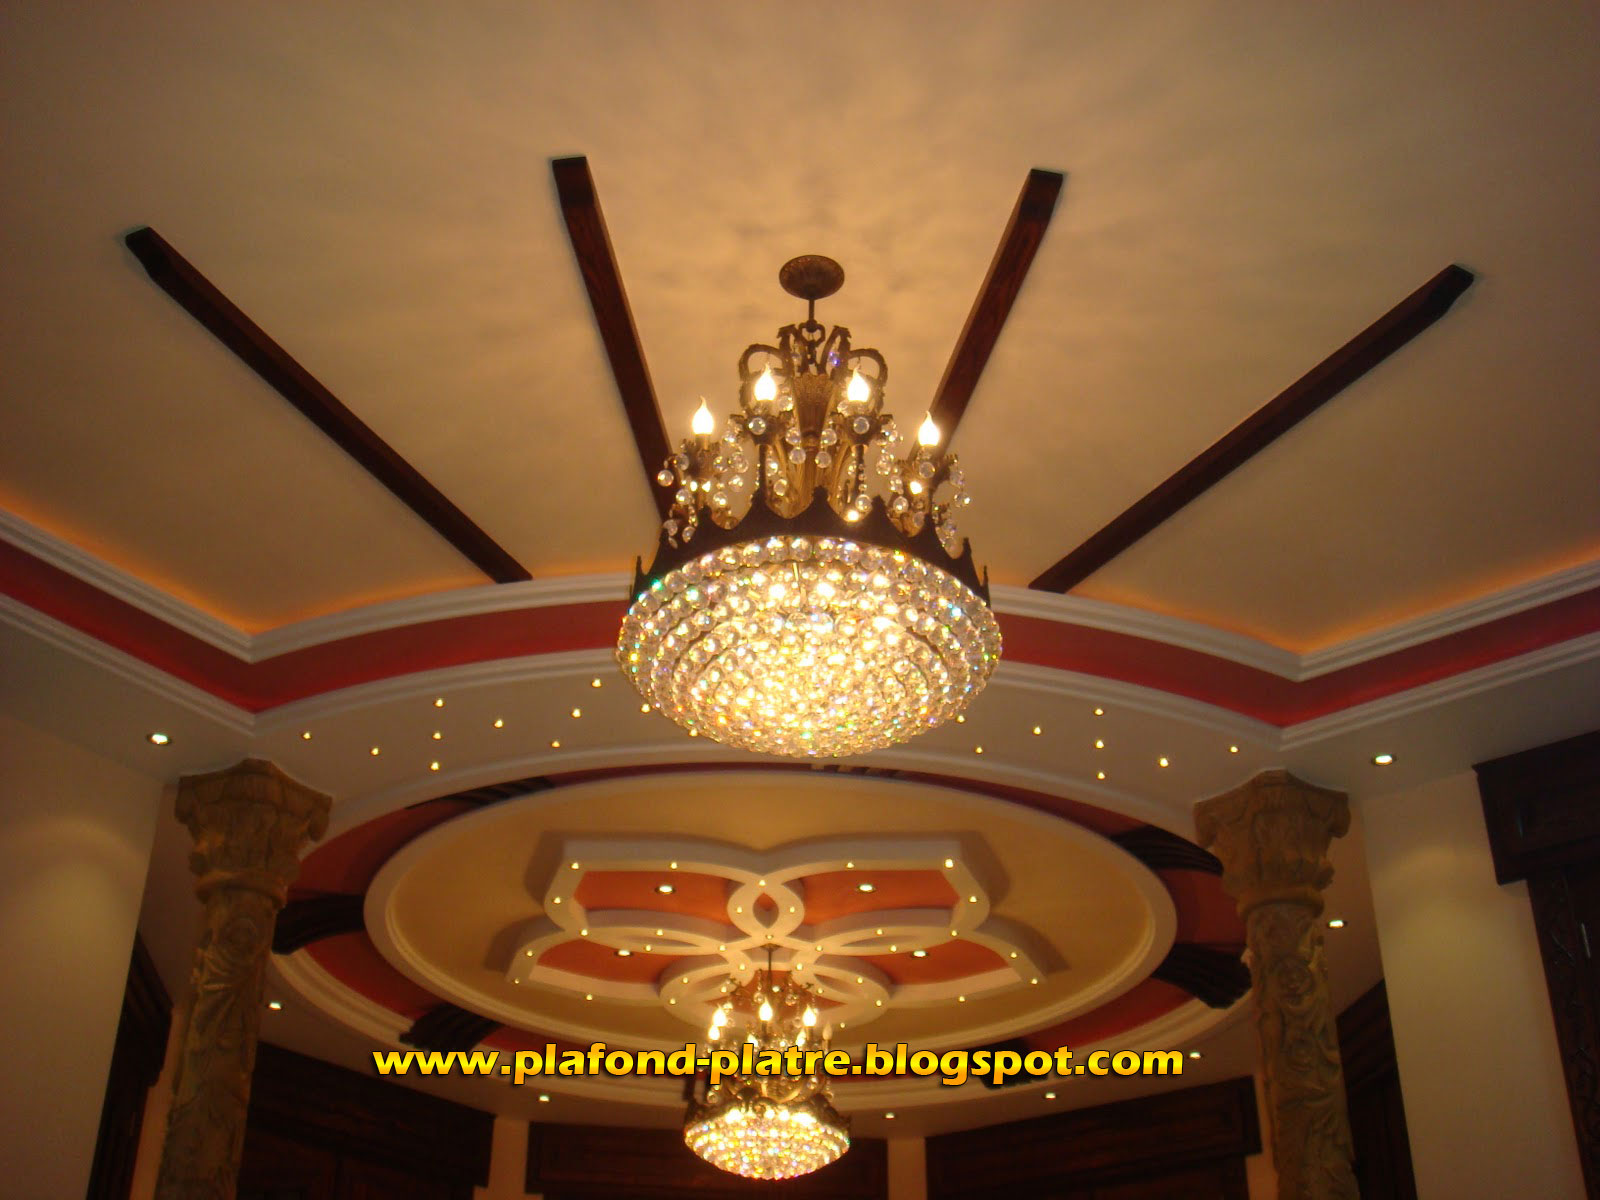 Decoration plafond platre design maroc for Decor de platre 2015